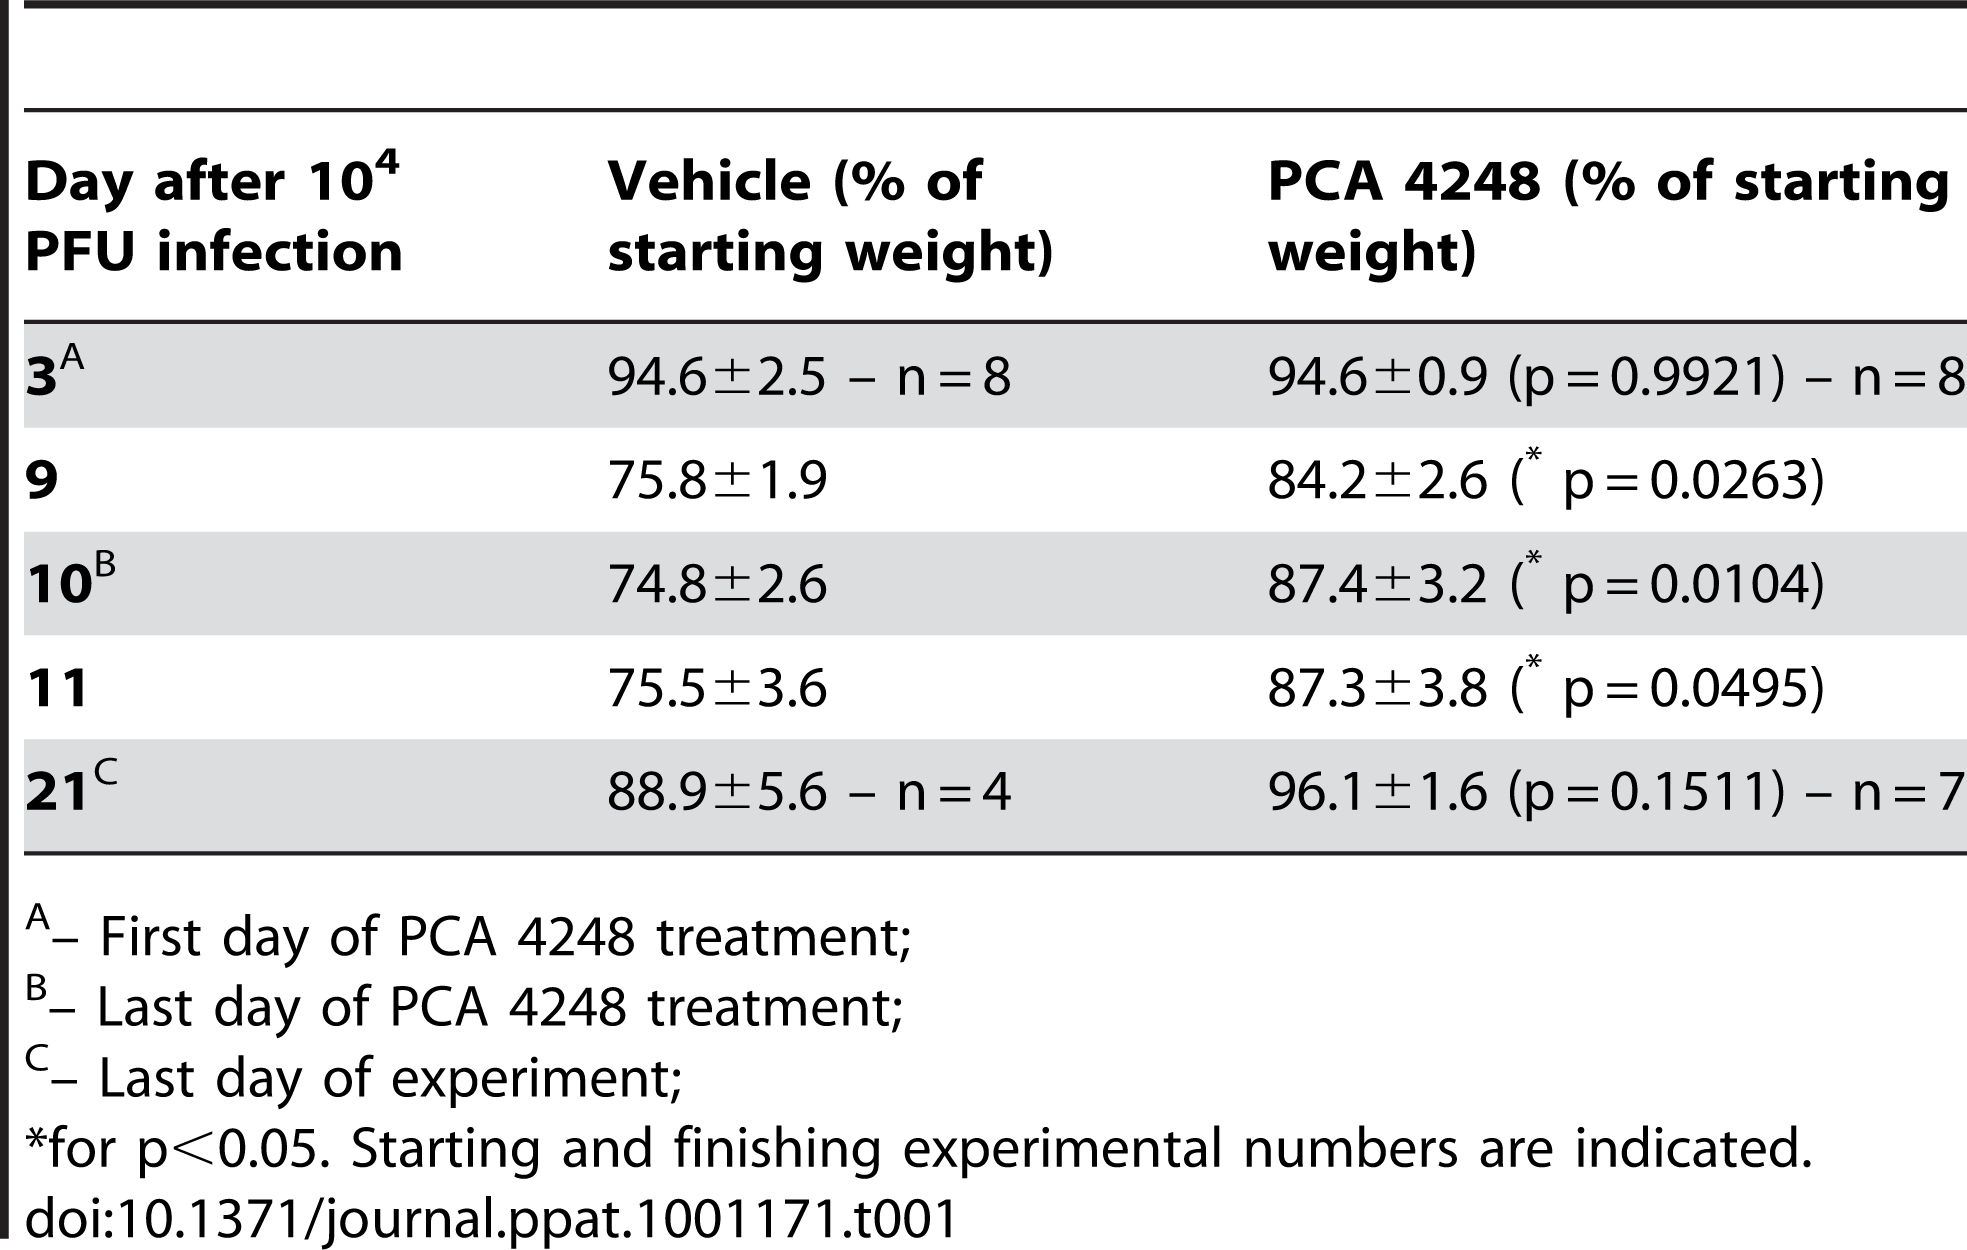 Body weight changes after Influenza A/WSN/33 H1N1 infection in mice treated with vehicle or PCA4246.